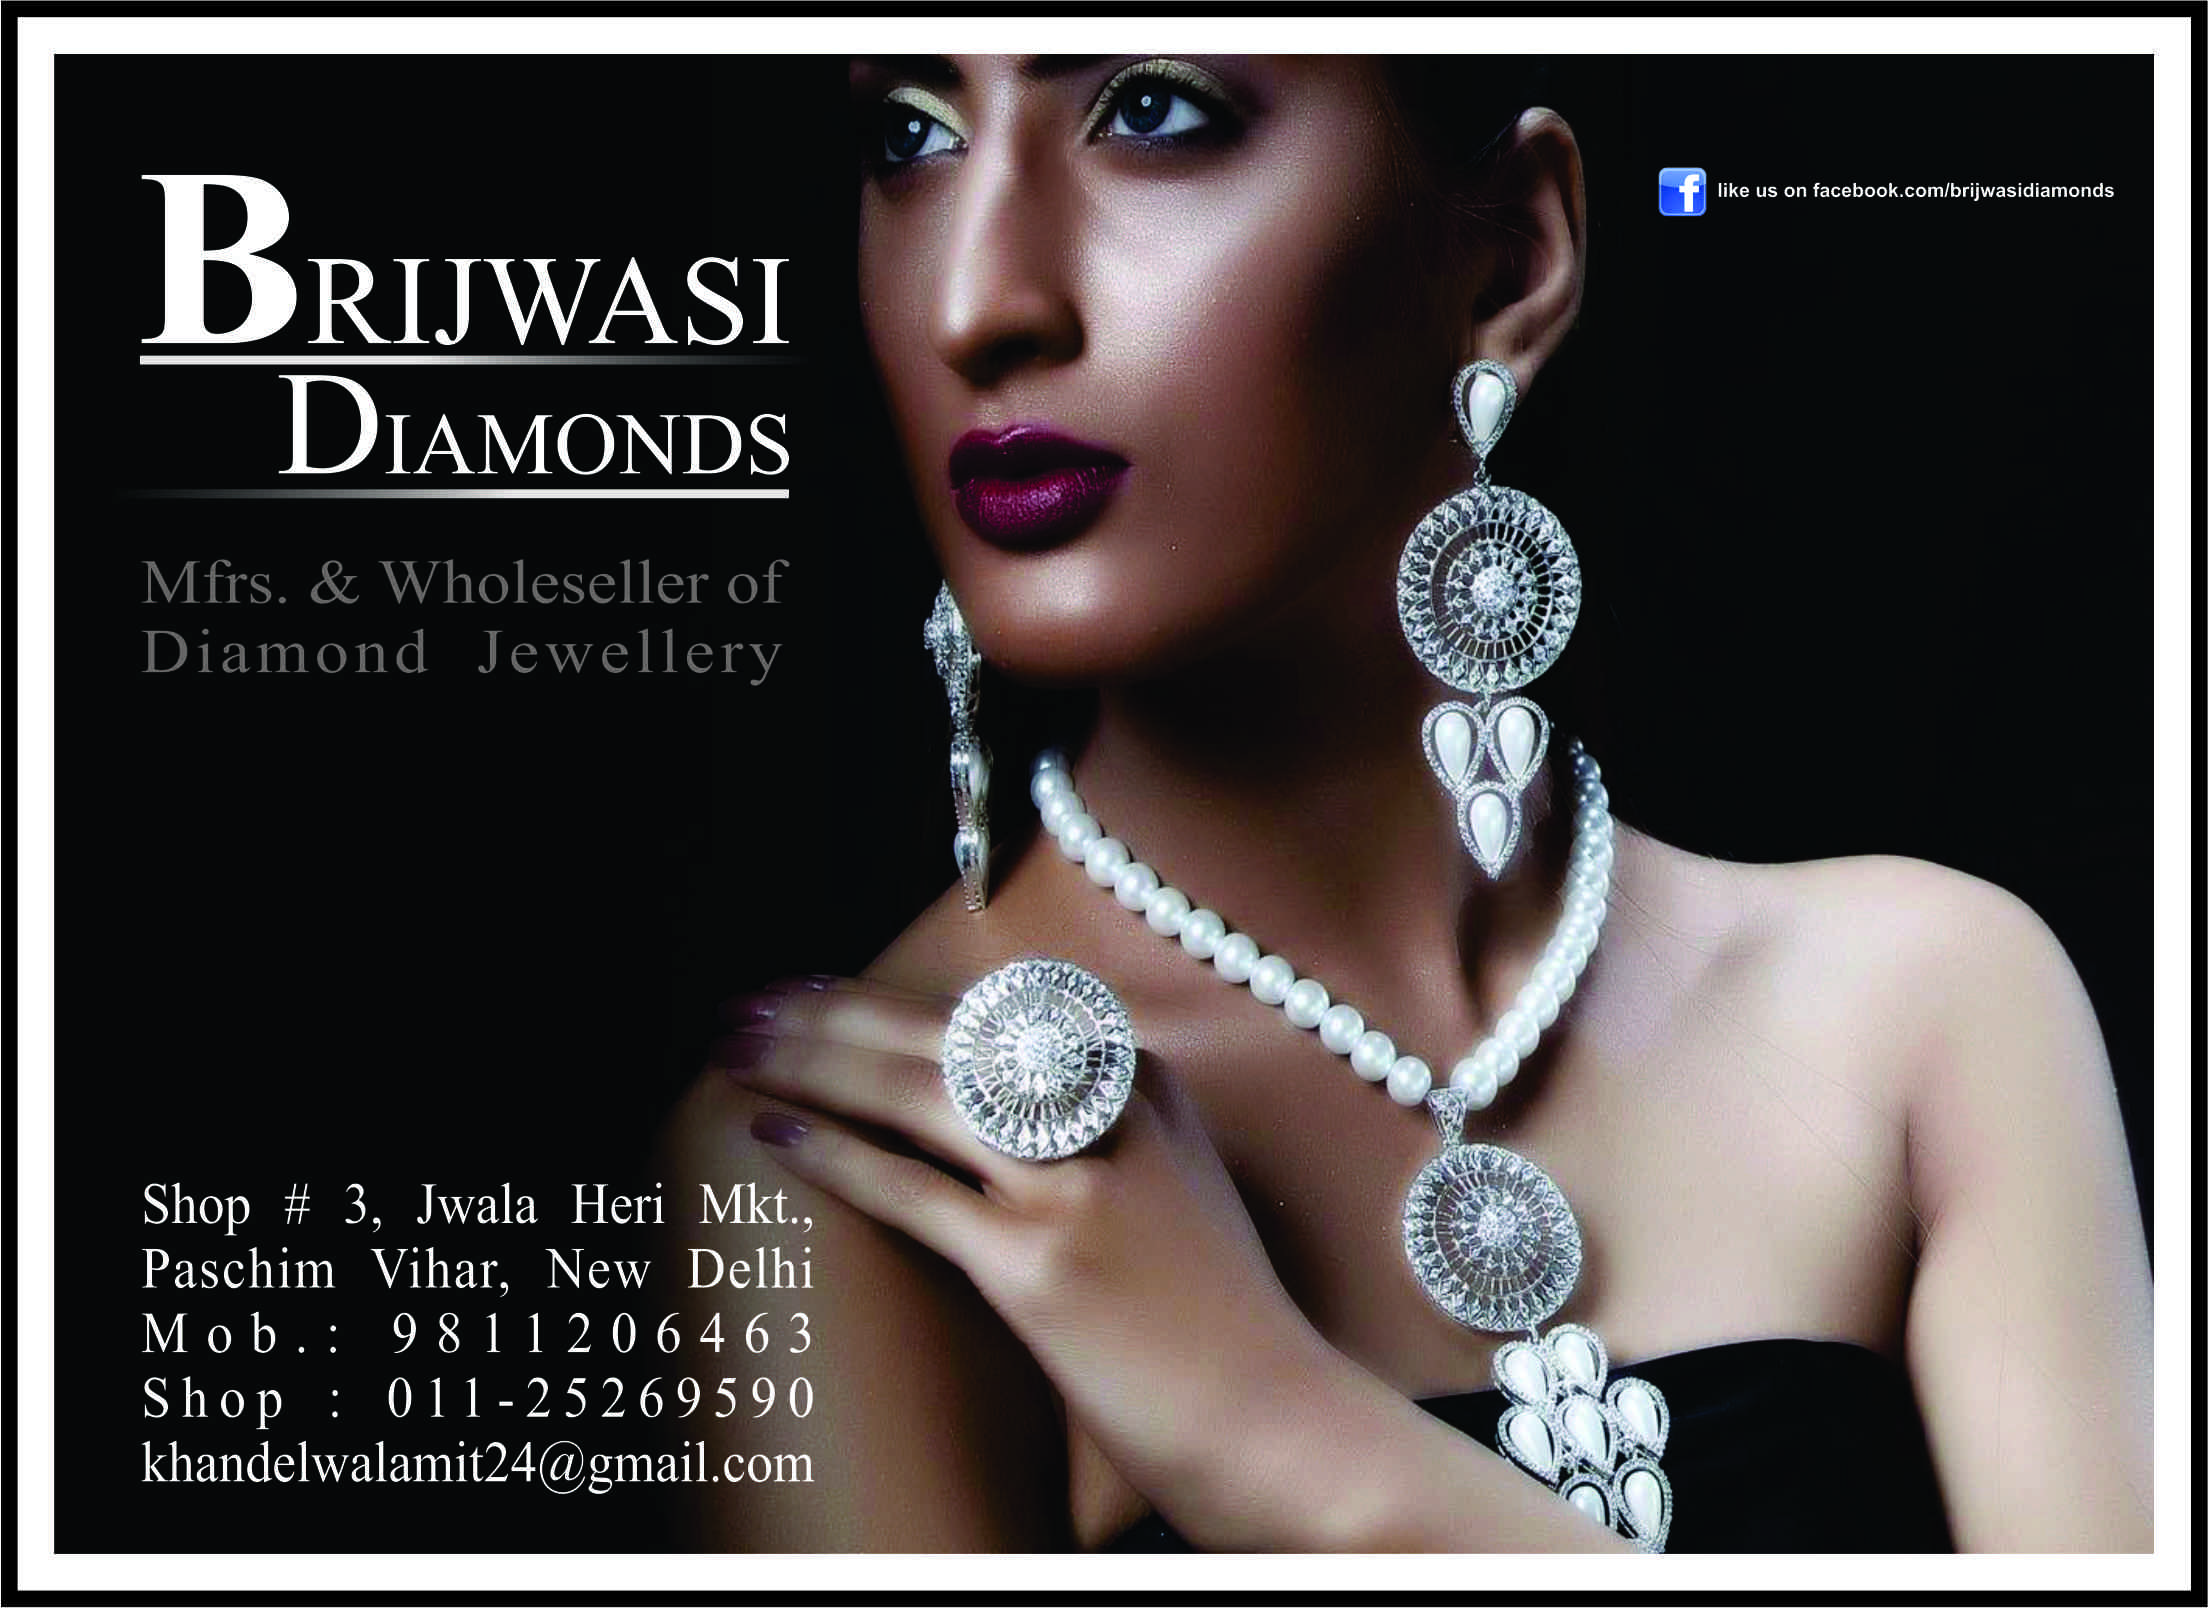 brijwasi diamonds